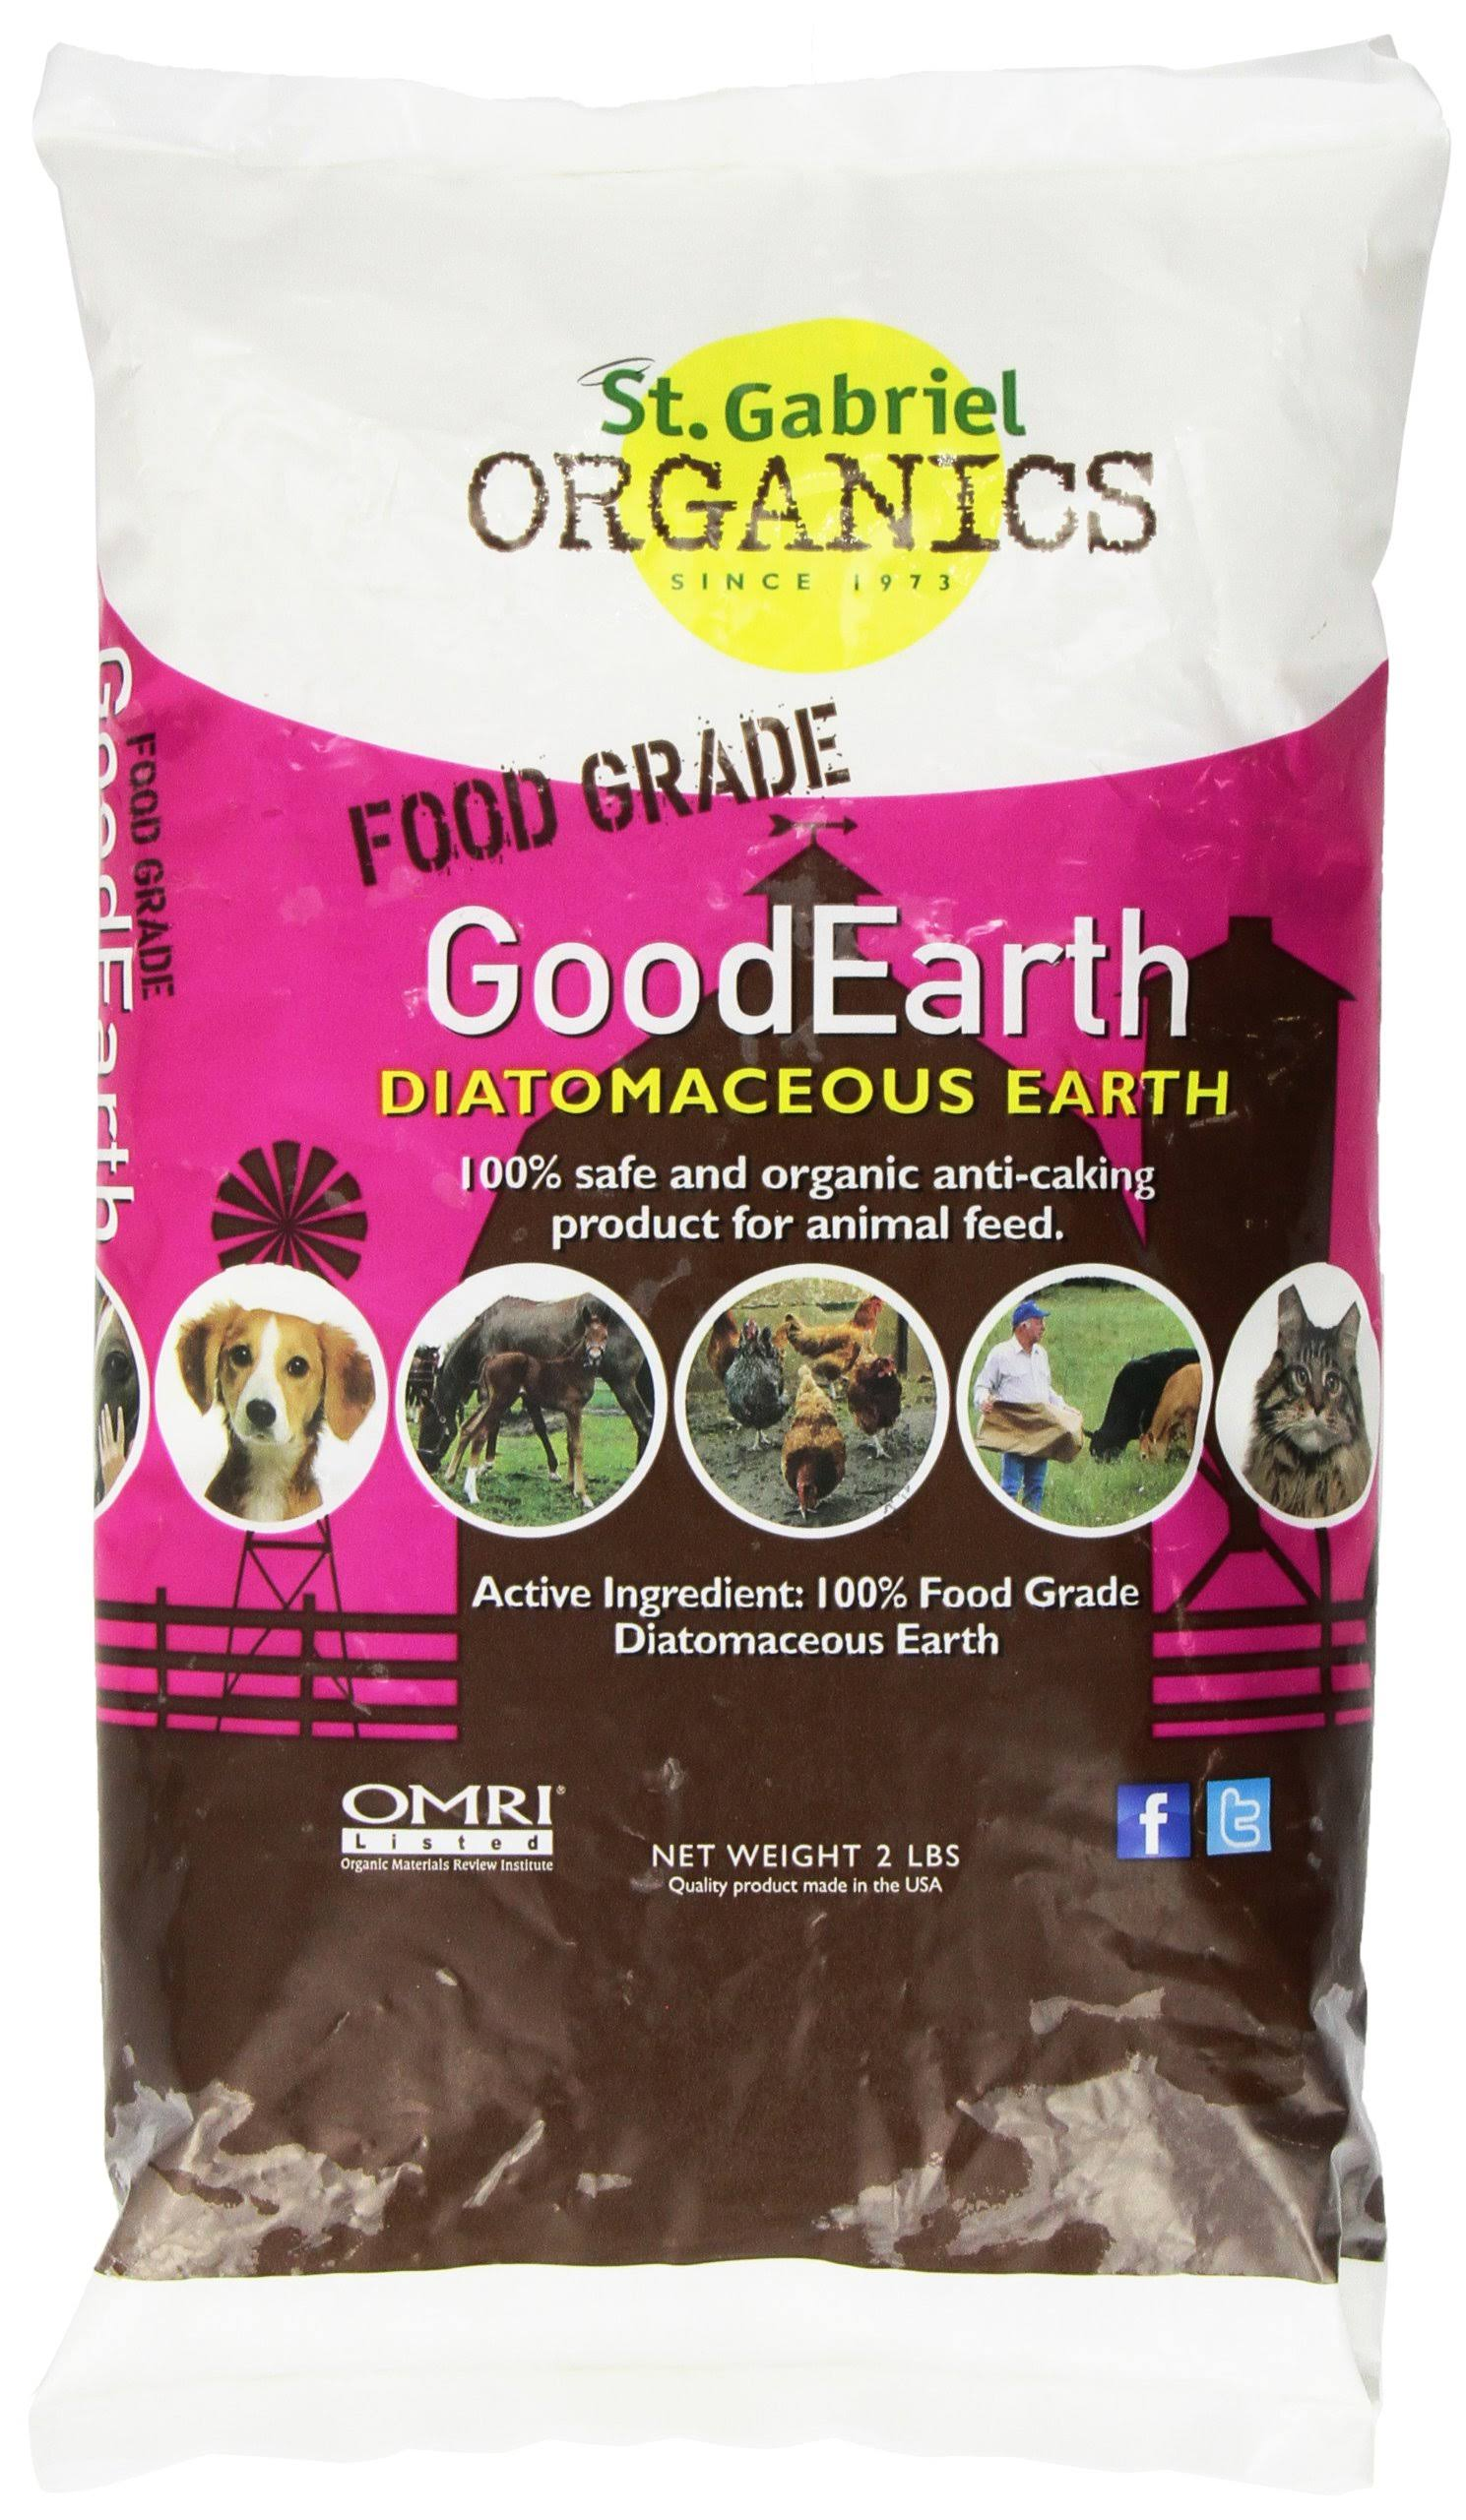 Good Earth Diatomaceous Earth Supplement - for Chicken and Farm Animals, 2lbs